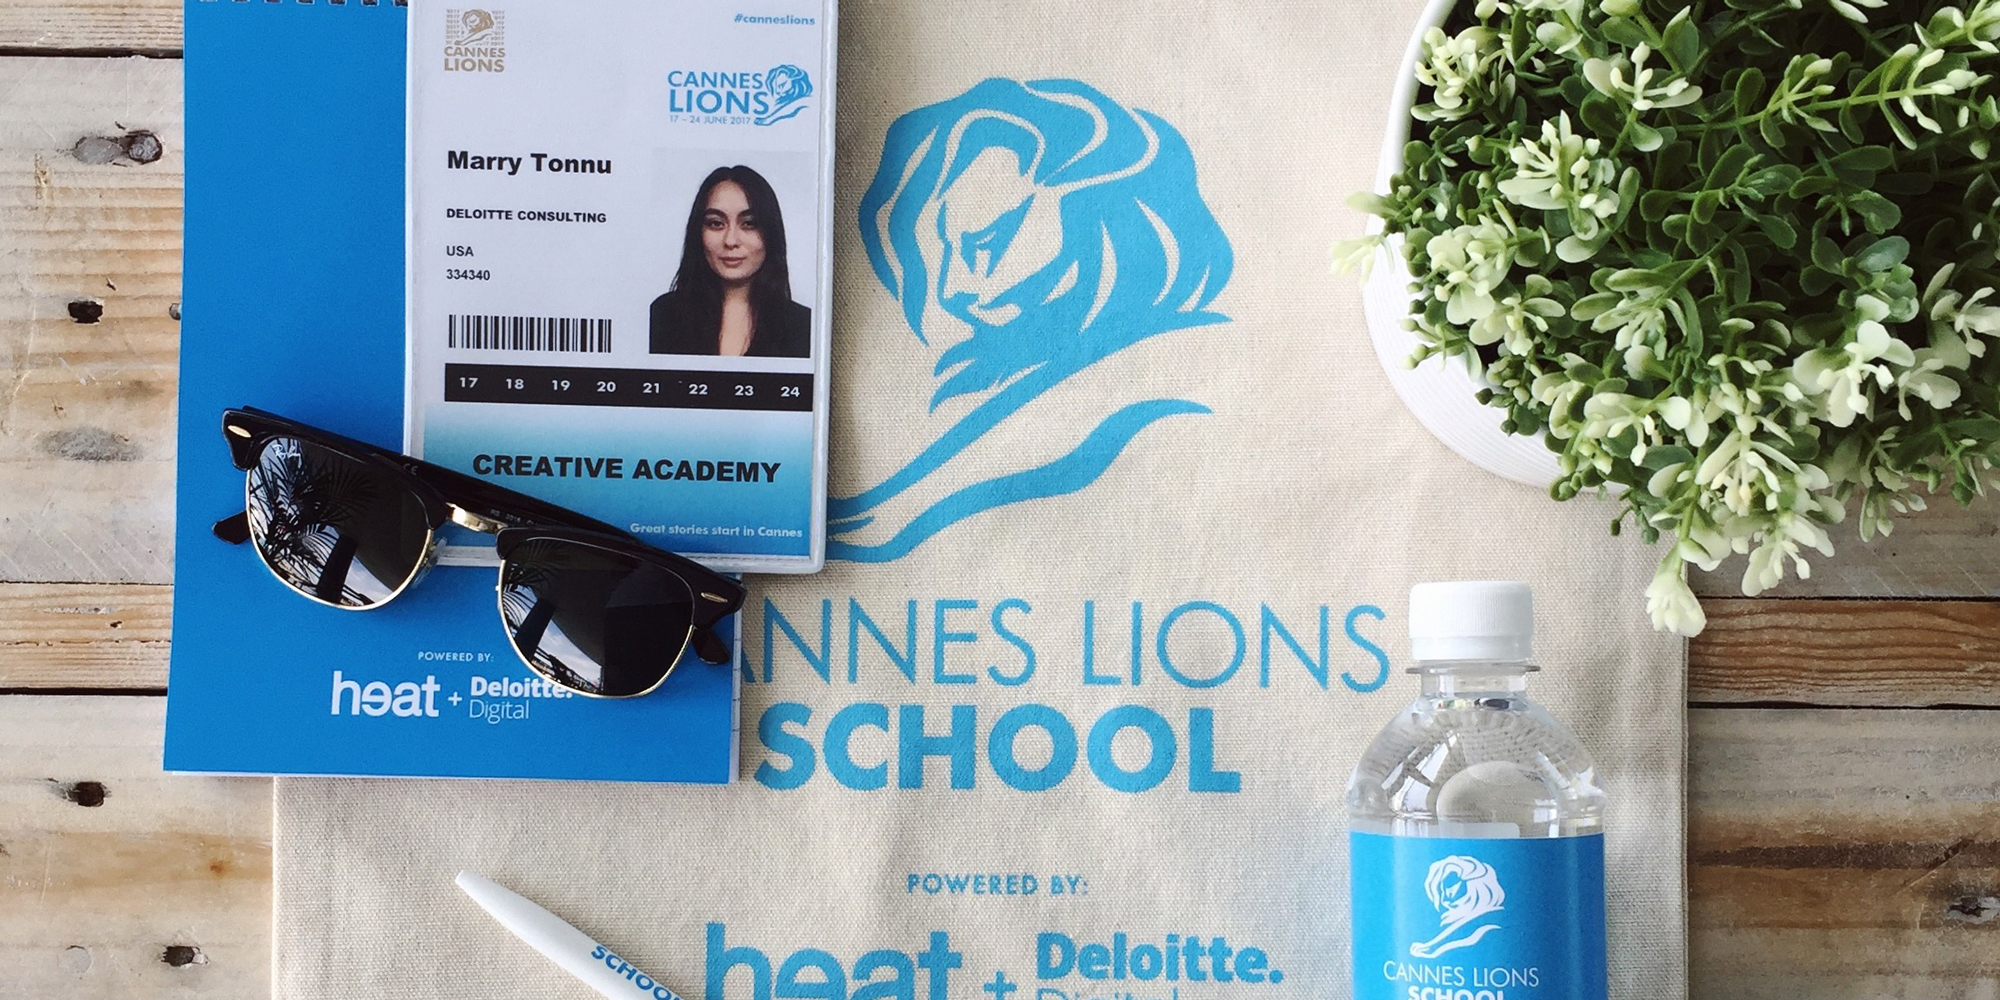 Image of swag obtained from the Young Lion school as well as Marry's ID and sunglasses